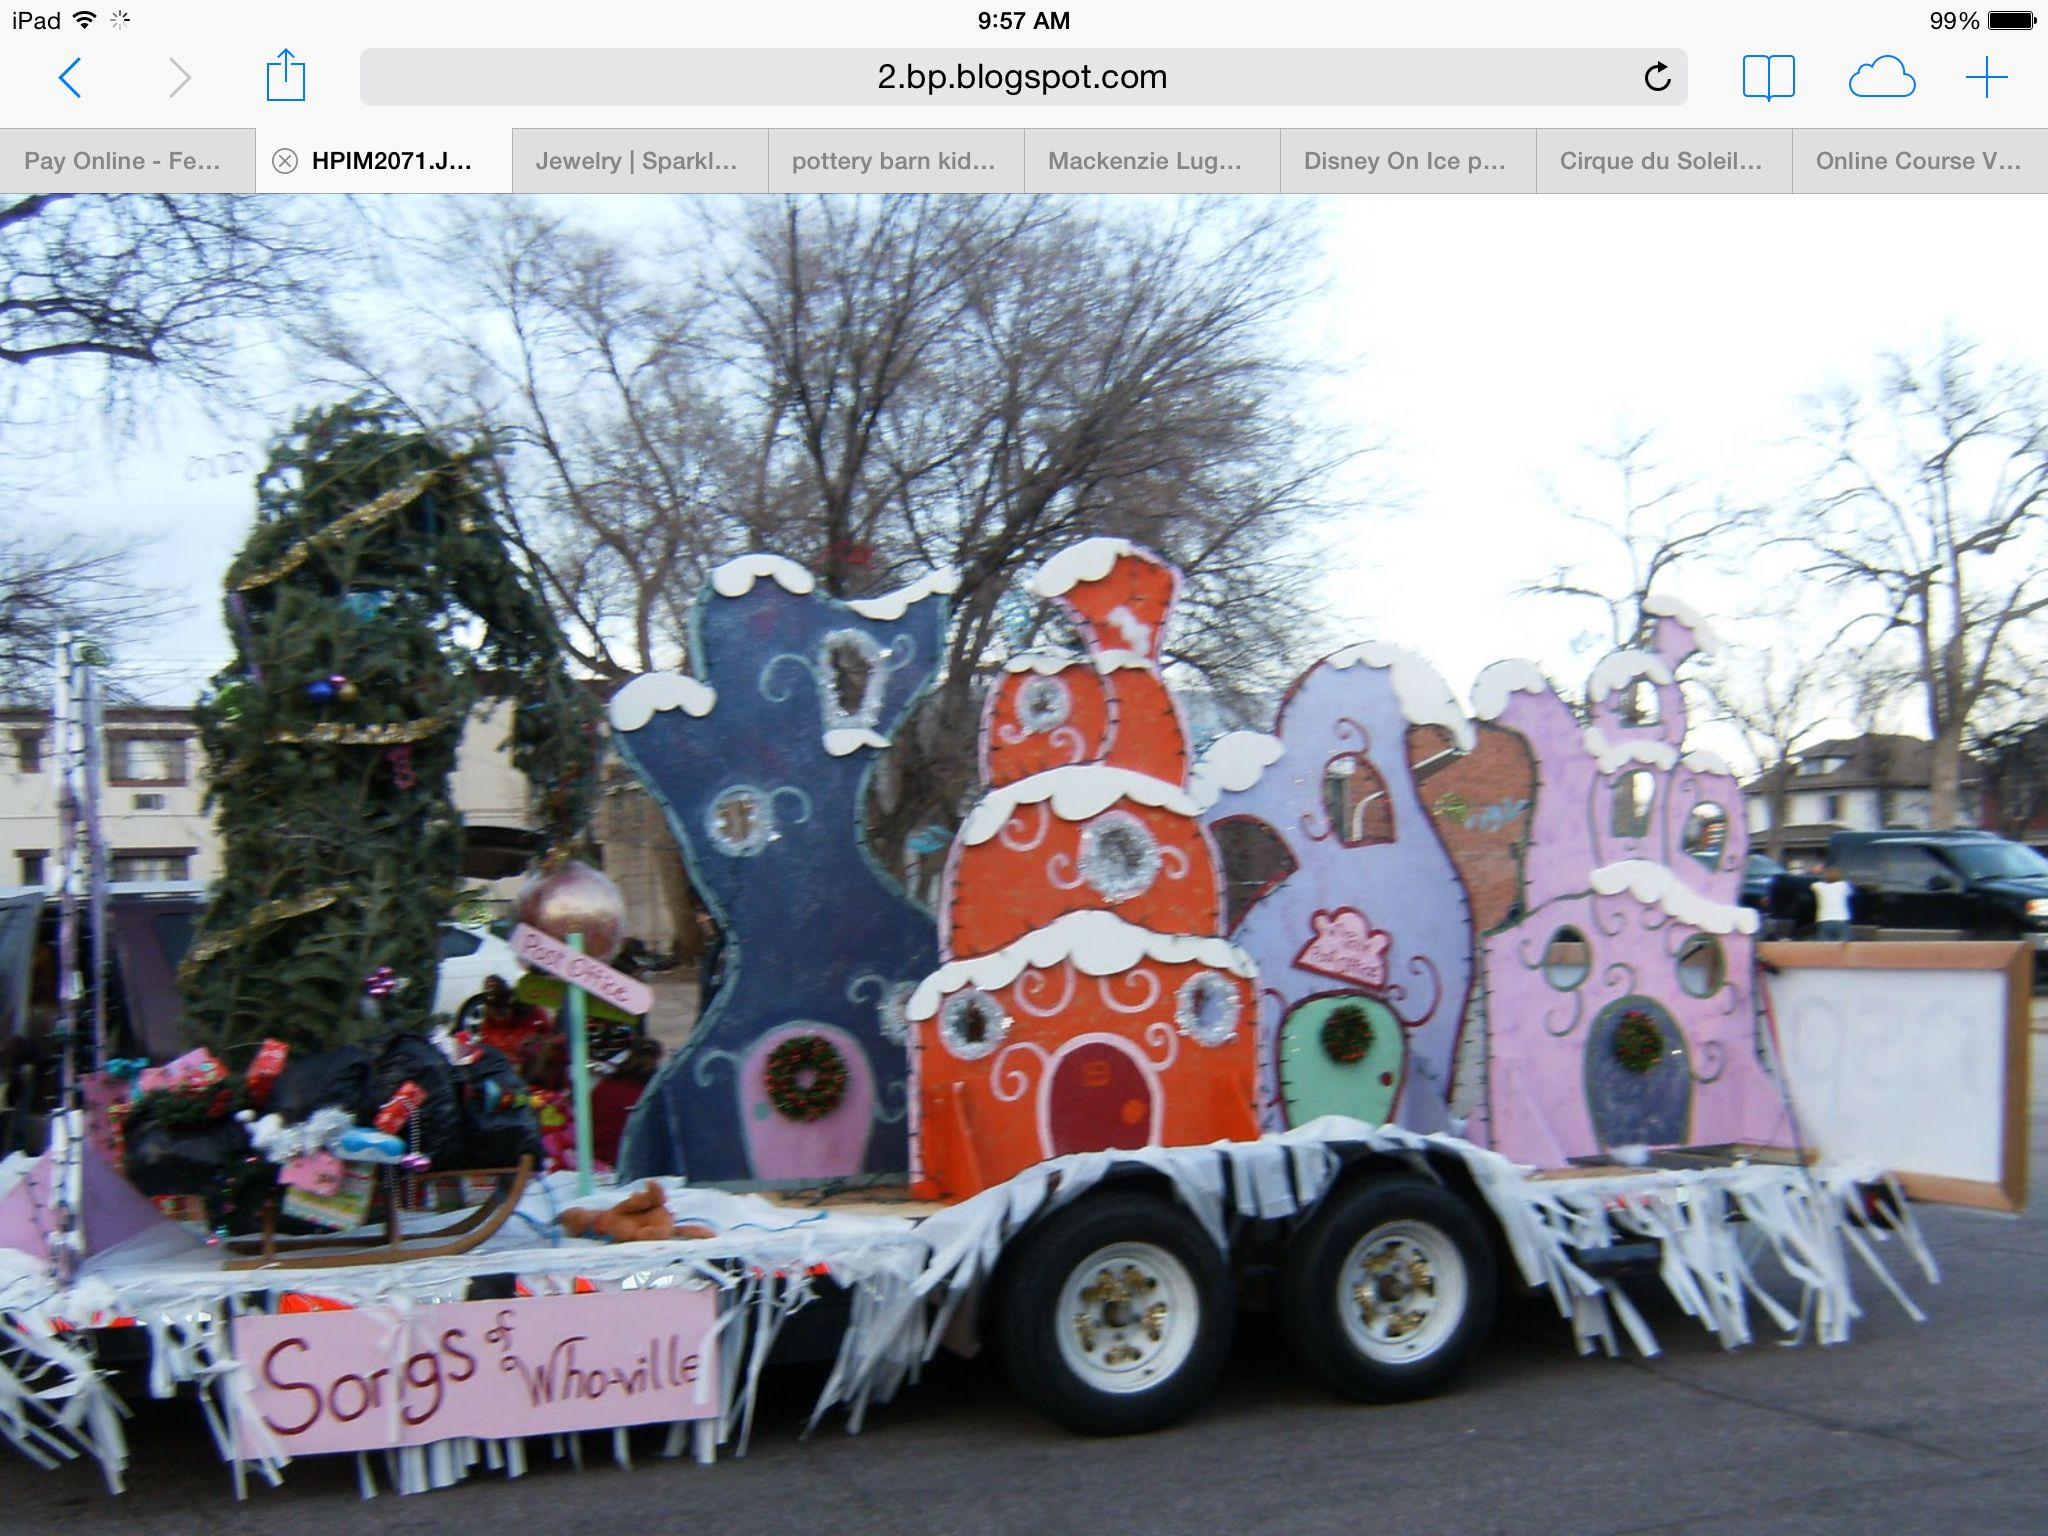 The Grinch Christmas Float Ideas.The Grinch Parade Float Christmas Parade Ideas Christmas